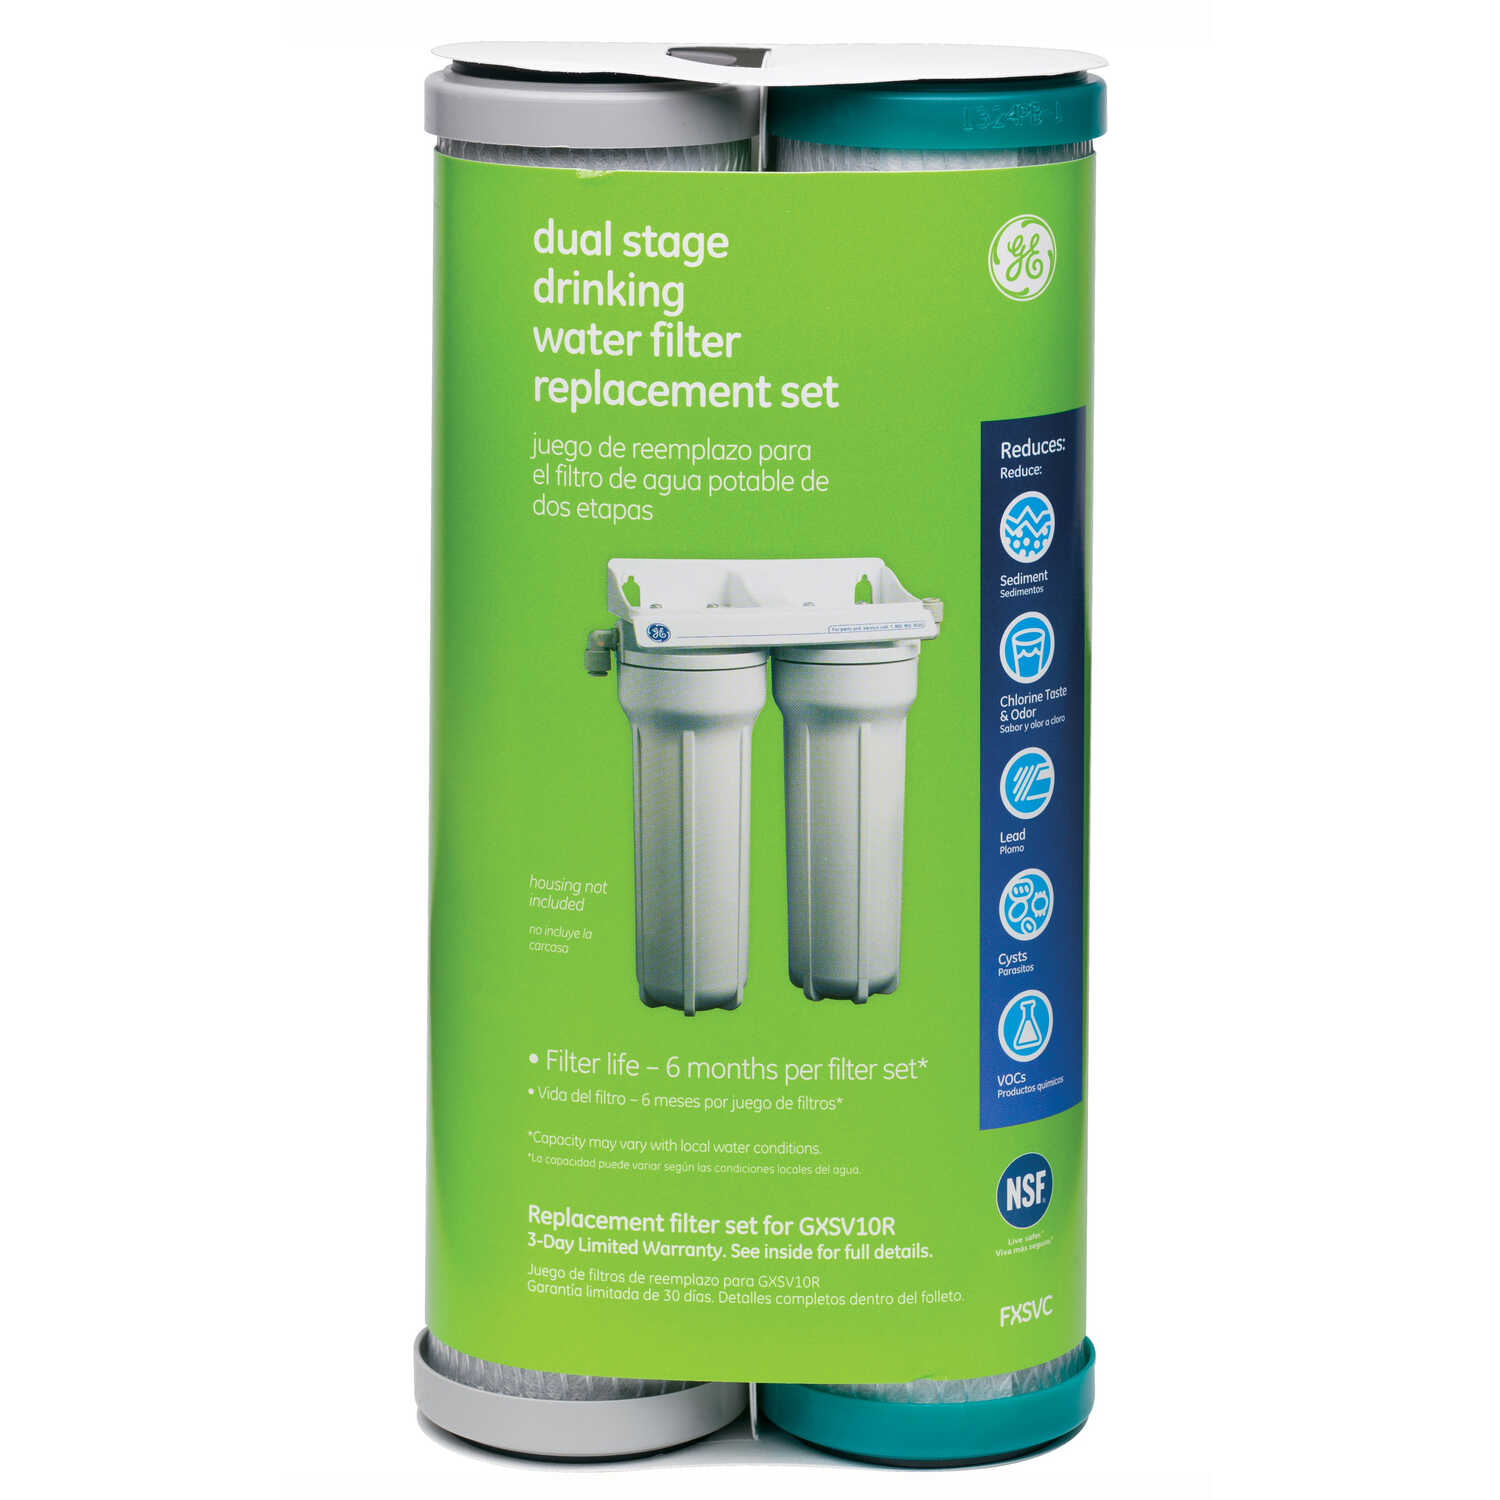 GE Appliances  Dual Stage Drinking Water  Replacement Water Filter  600 gal.